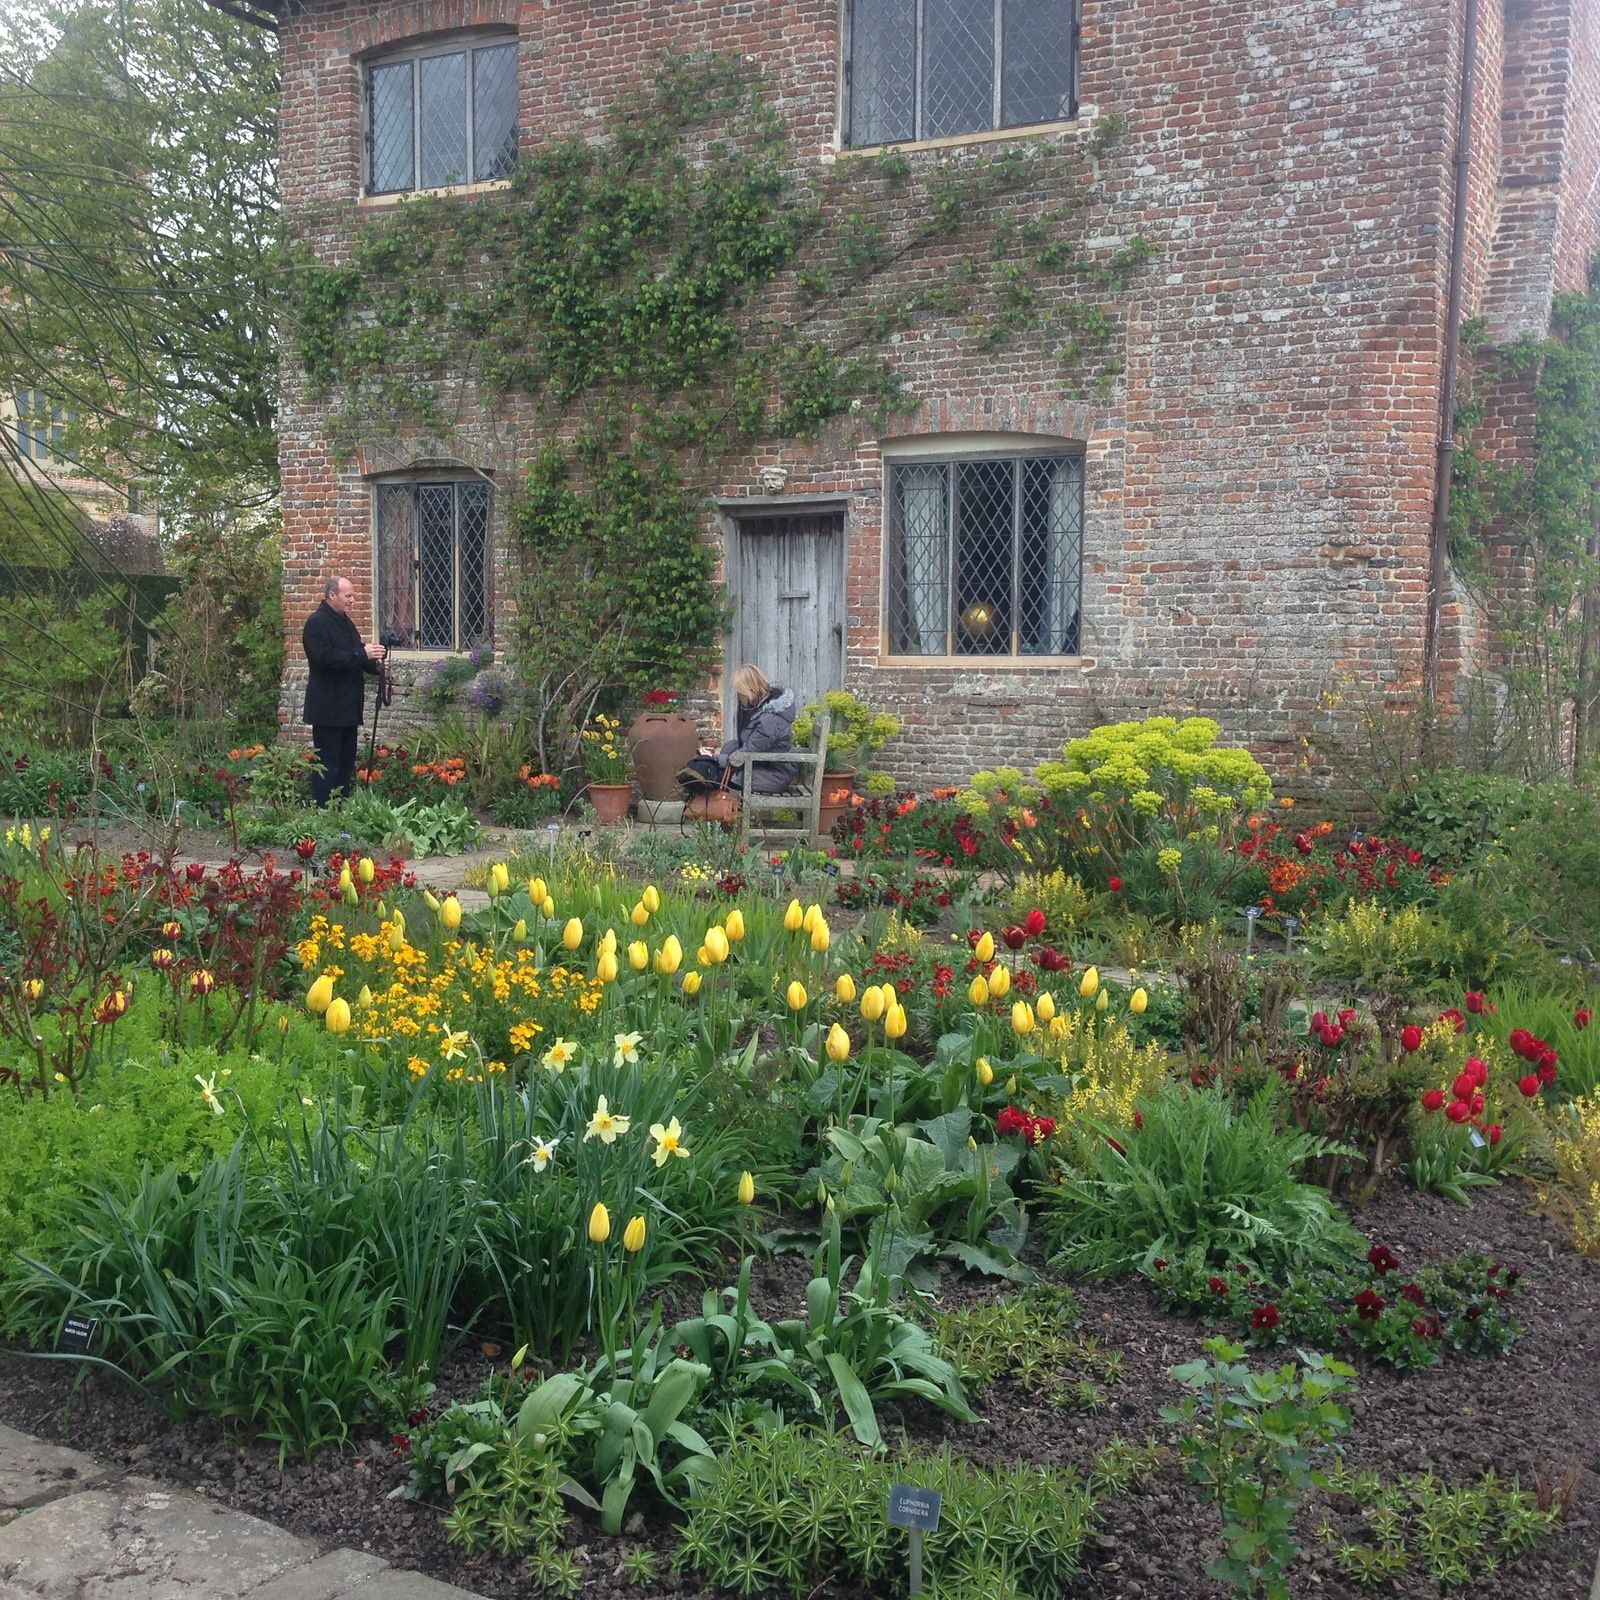 The sunset-coloured Cottage Garden